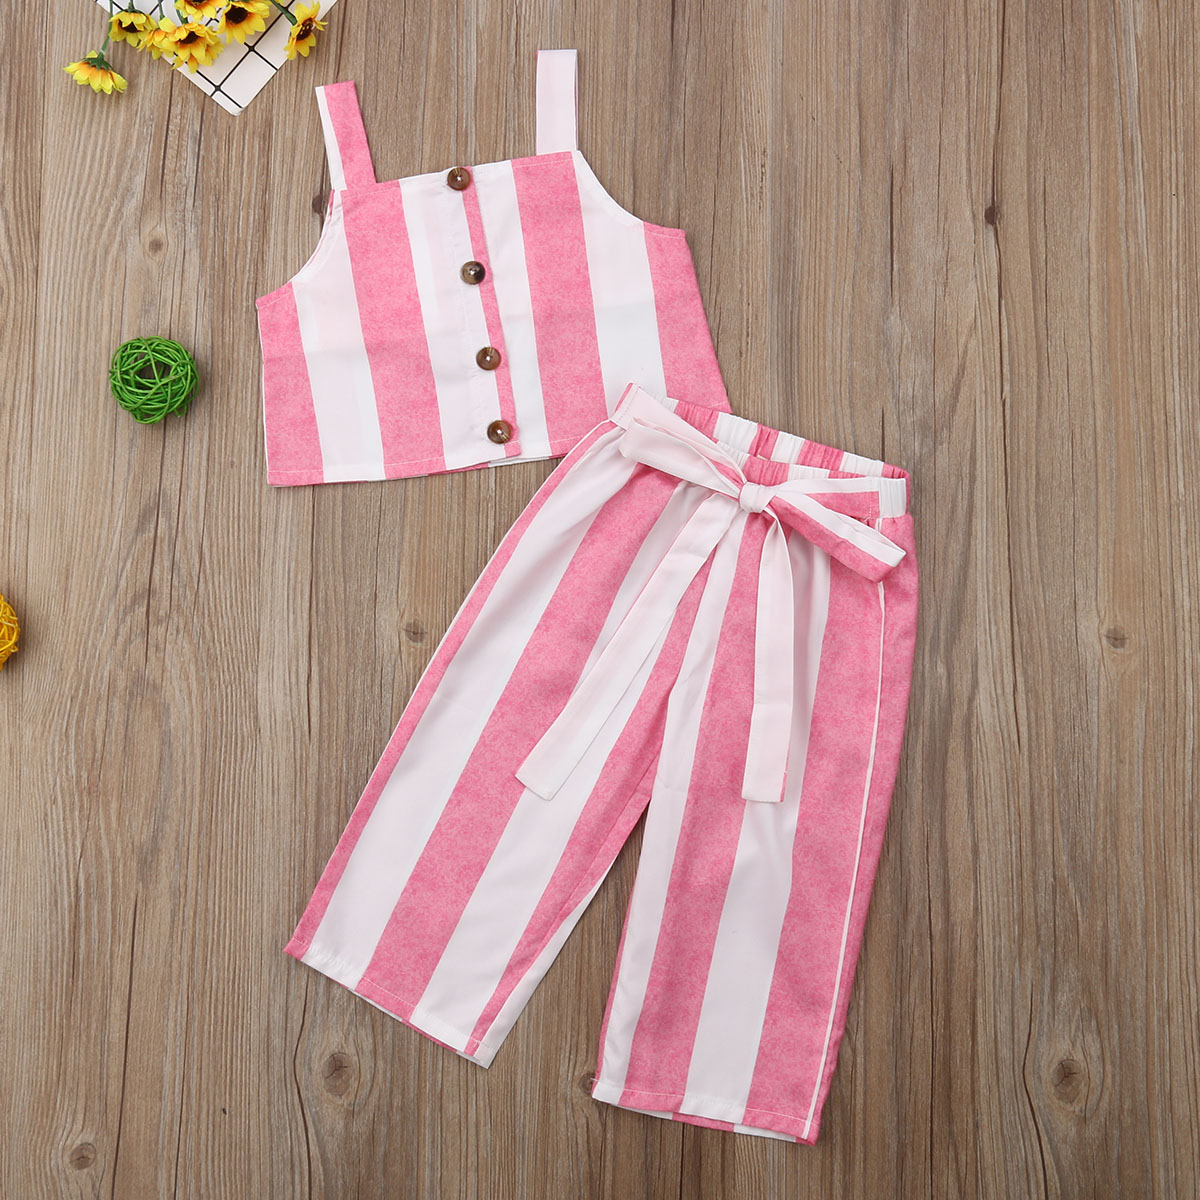 2019 Summer Baby Girl Clothes Striped Sleeveless Fashion Crop Top Long Pants 2pcs Outfit Clothes Set